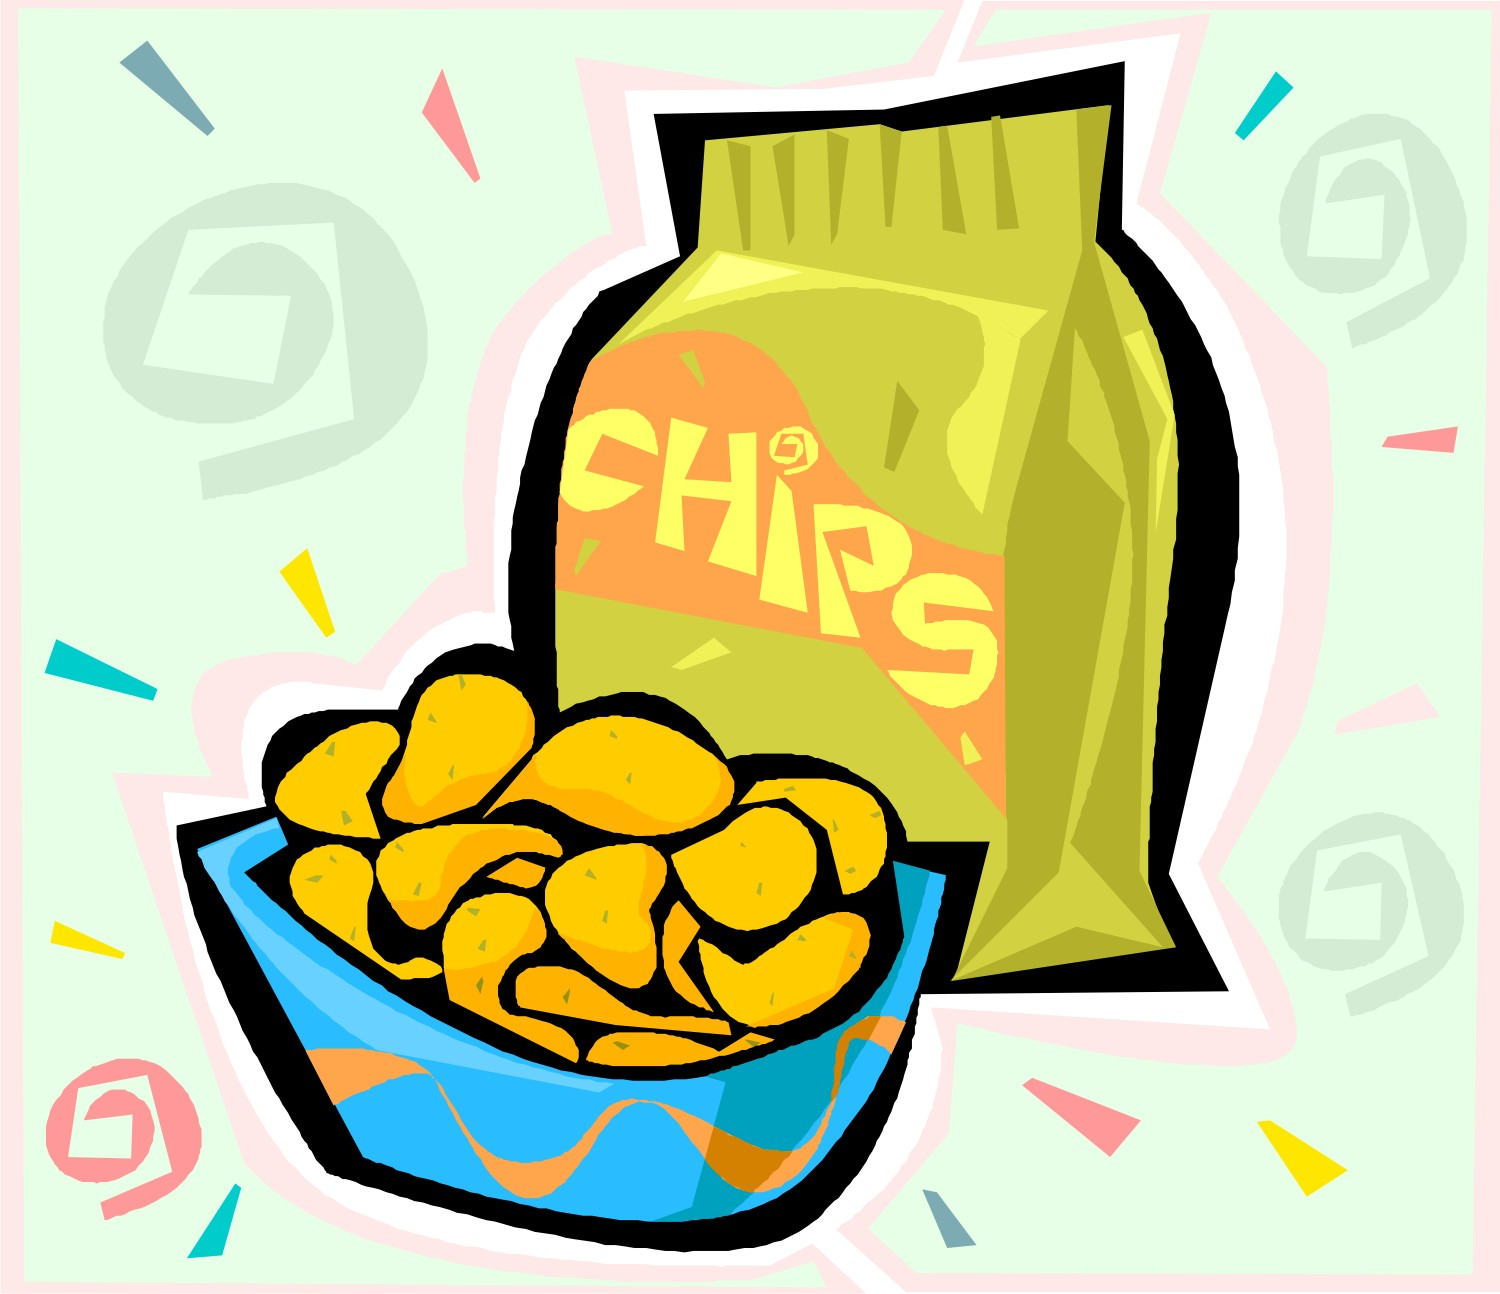 Lays logo clipart download Free Lay Cliparts, Download Free Clip Art, Free Clip Art on ... download